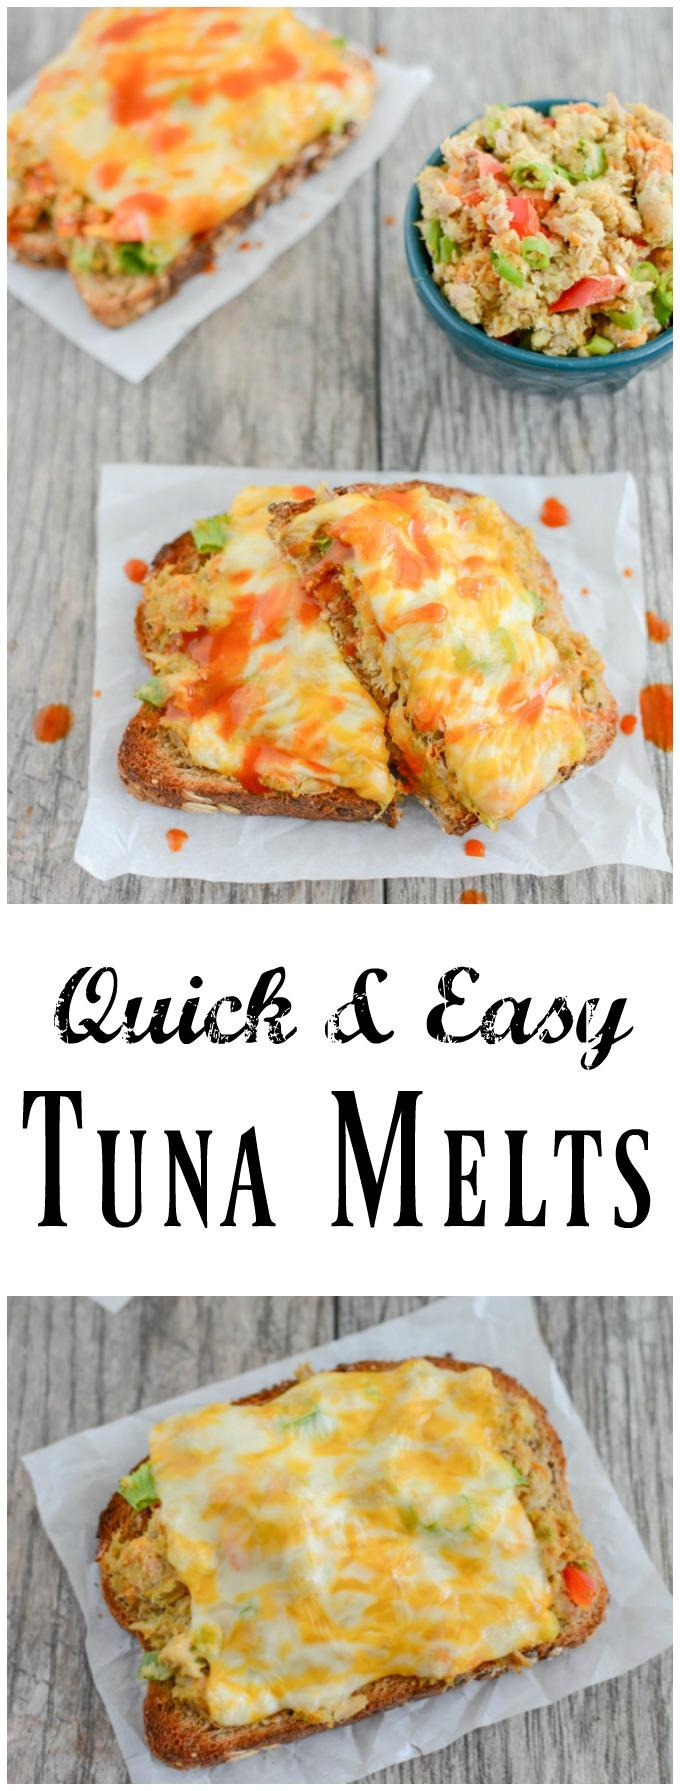 This recipe for Easy Tuna Melts comes together quickly and is great for lunch! Try it to help add more seafood to your diet!